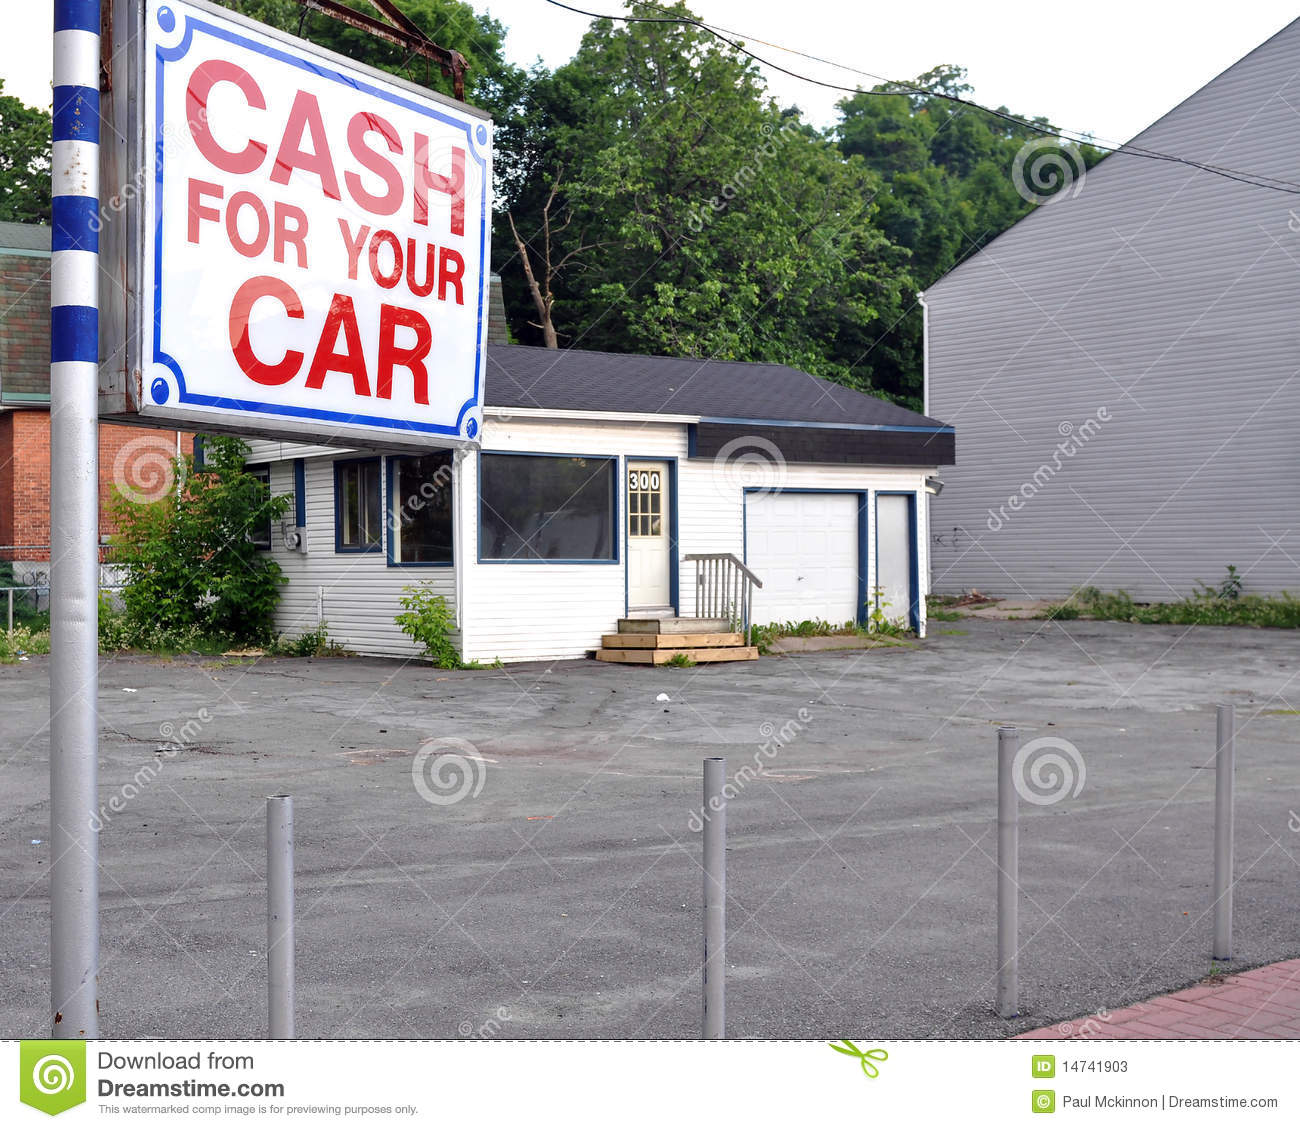 vacant used car lot stock image image of auto sale 14741903. Black Bedroom Furniture Sets. Home Design Ideas